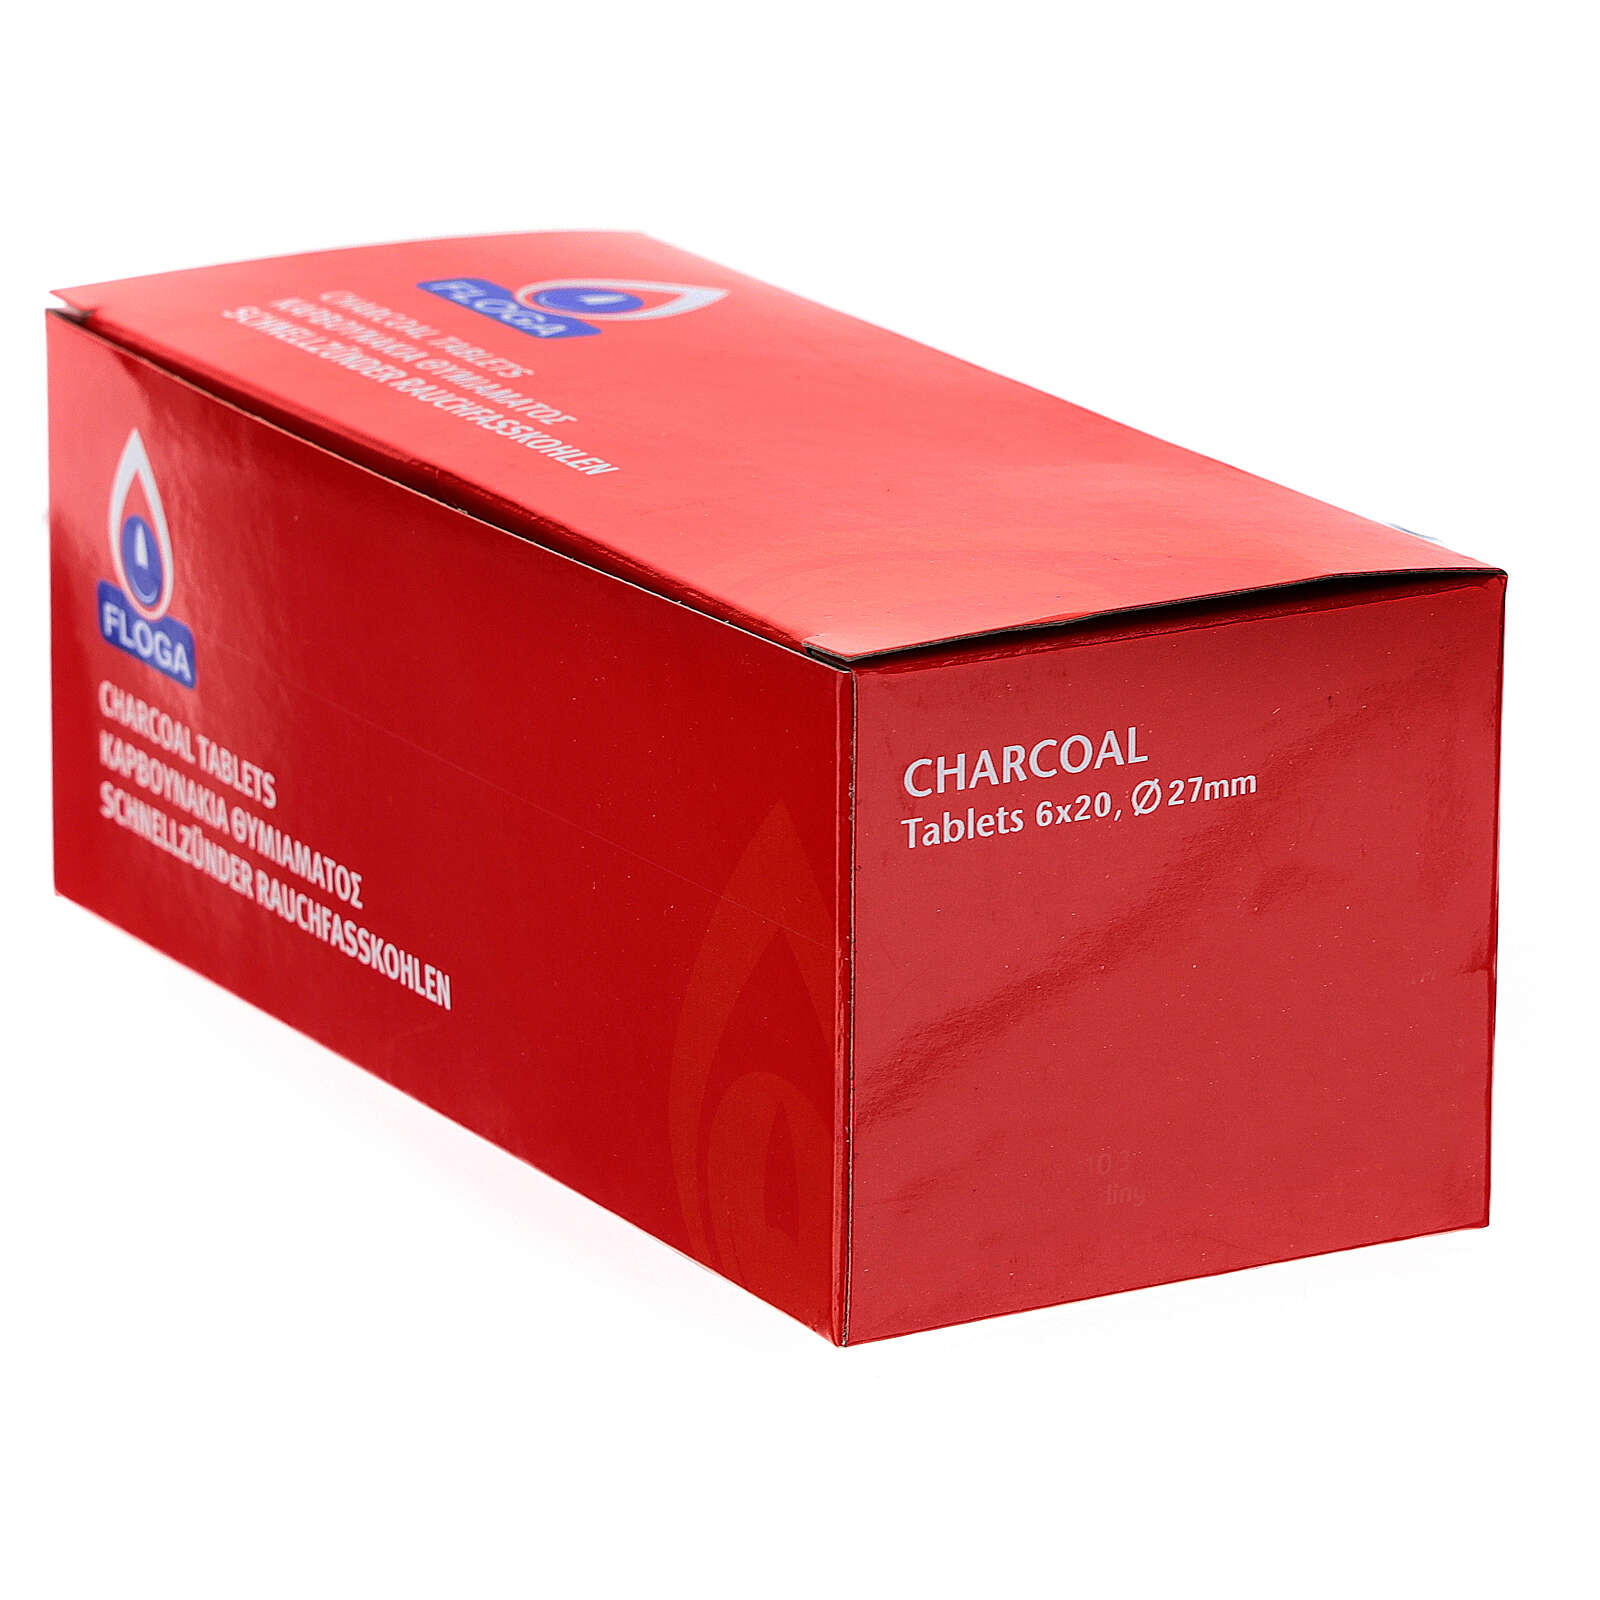 Charcoal for incense 0.1 in diameter 120-piece pack 3